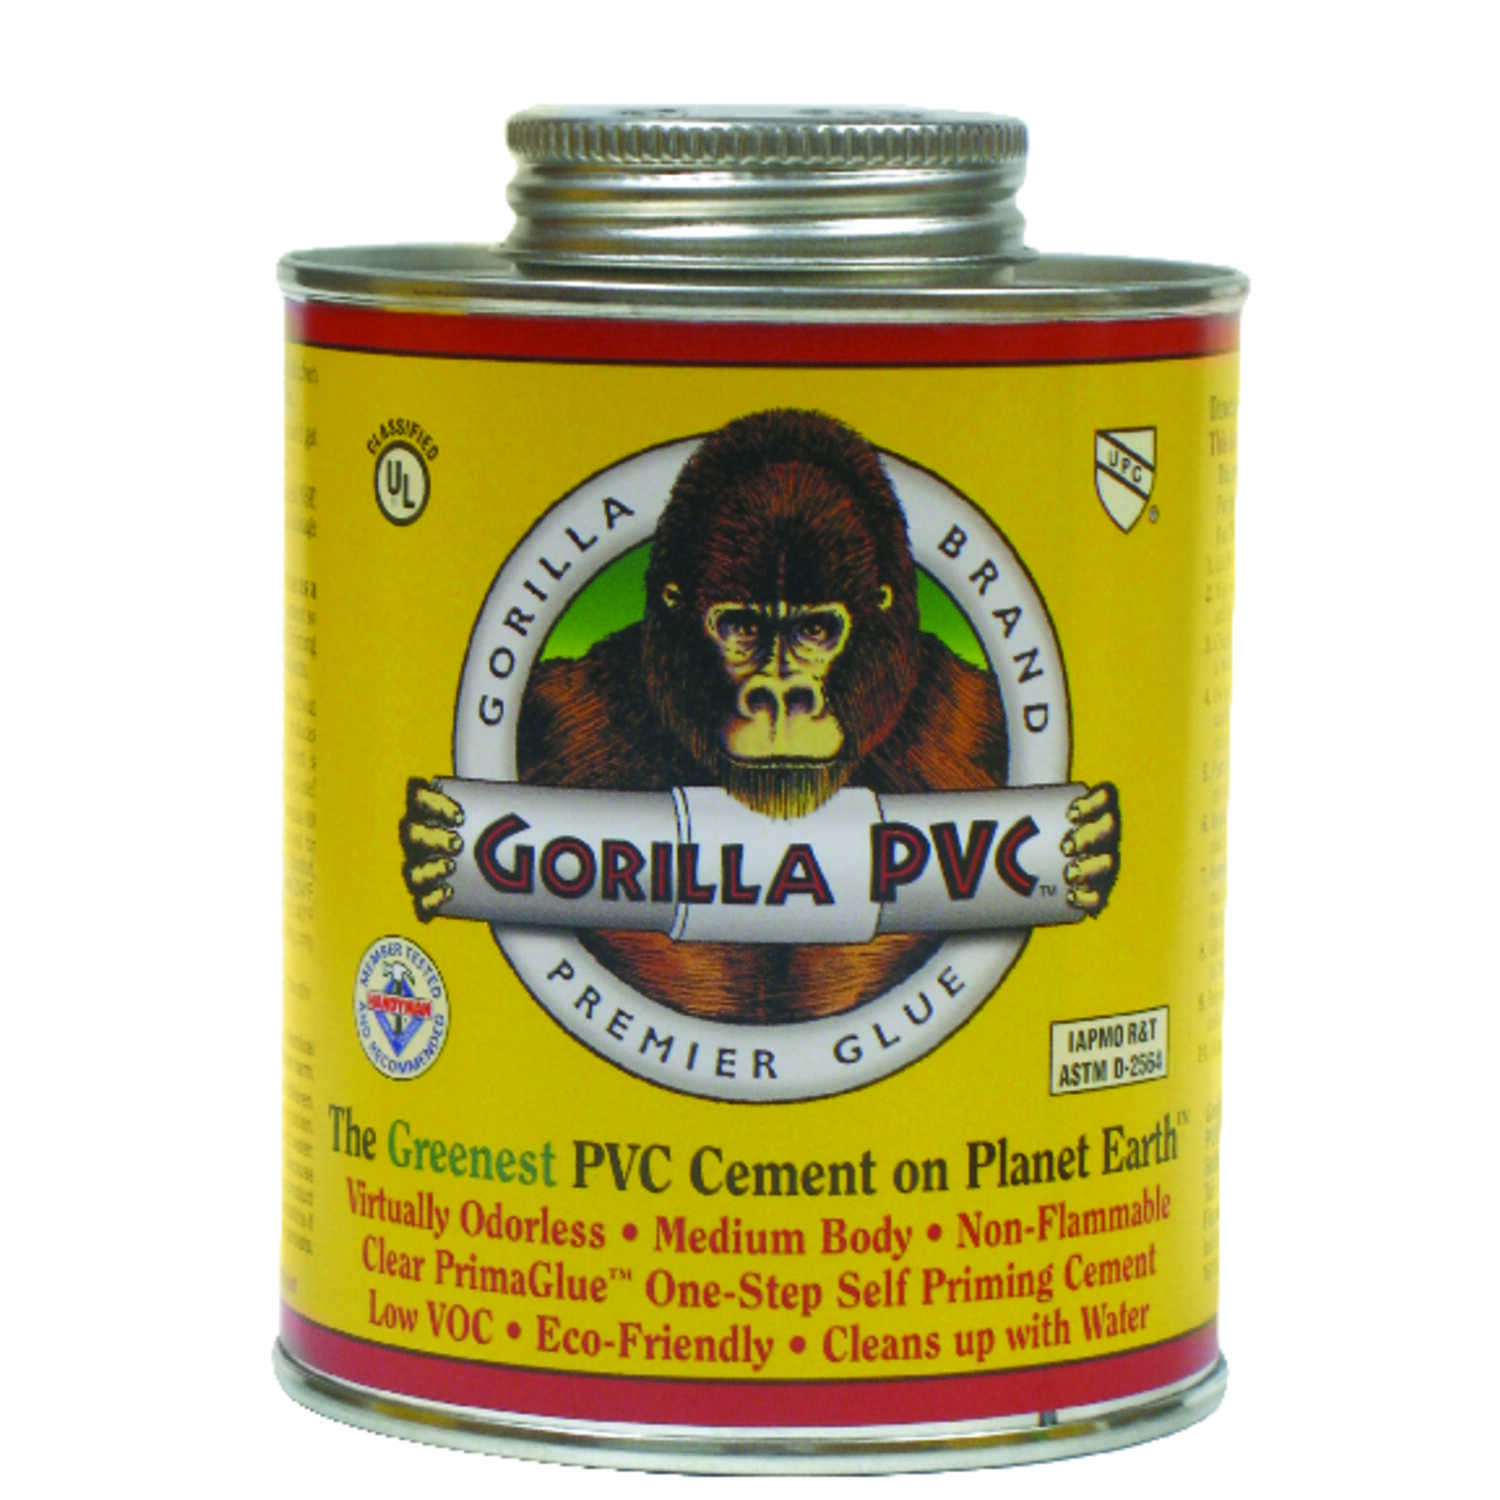 Gorilla PVC  PrimaGlue  Clear  Primer and Cement  For PVC 16 oz.